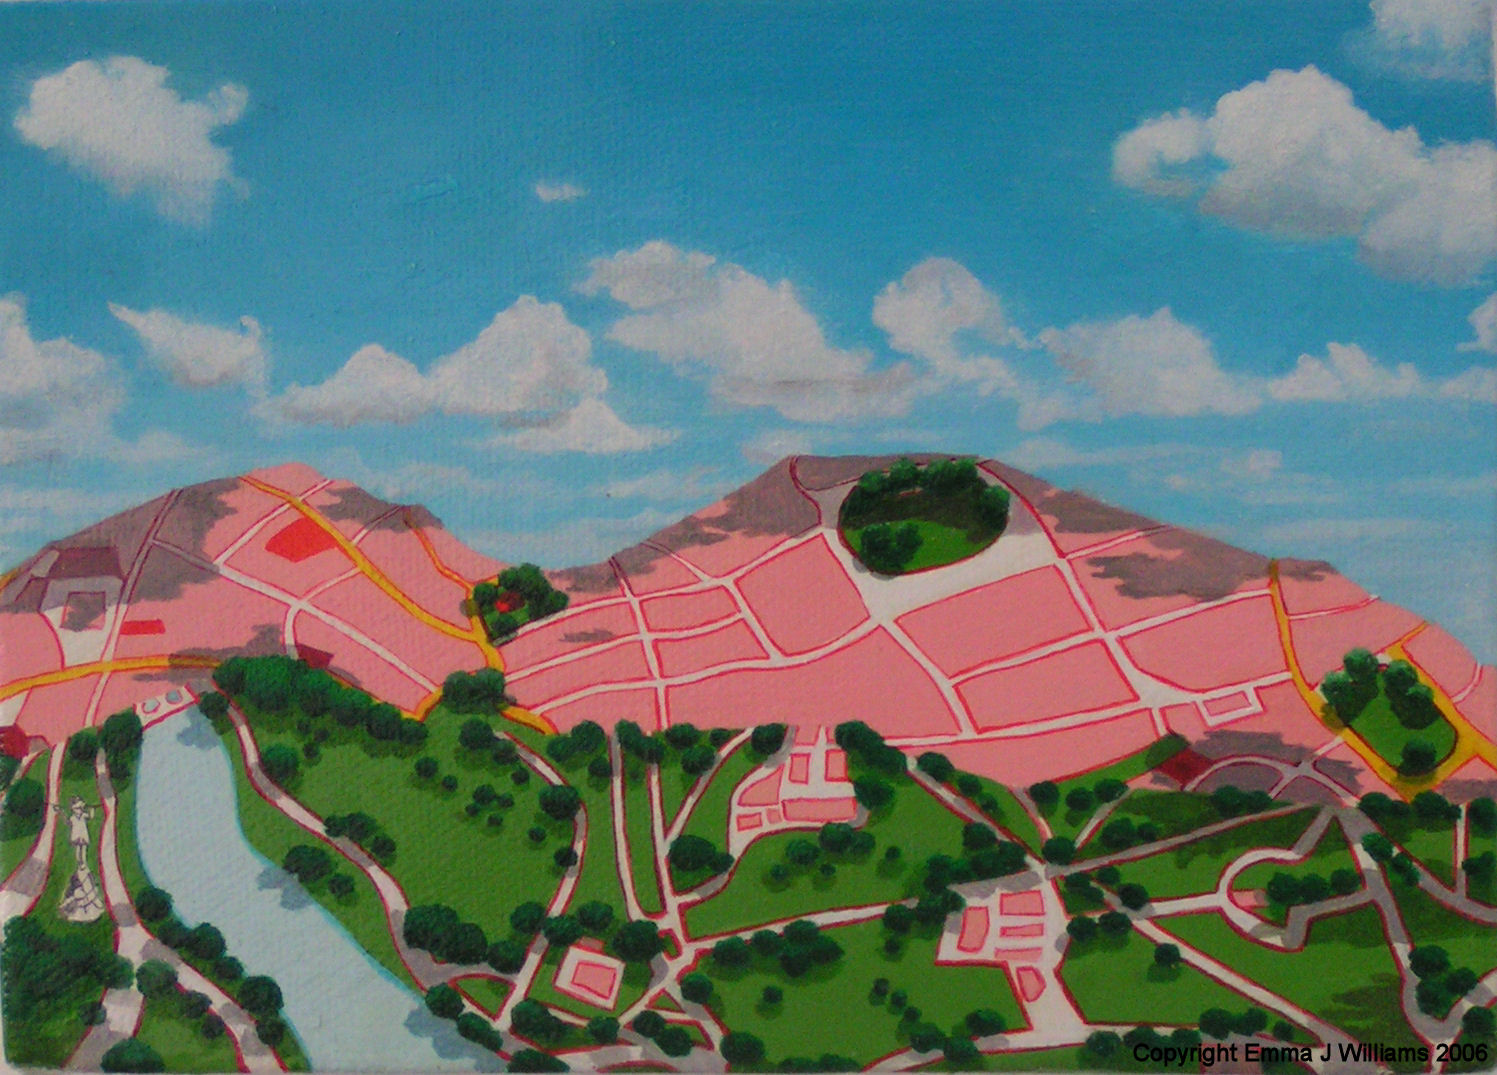 Emma J Williams ' Pink City with park' 2004 oil on canvas